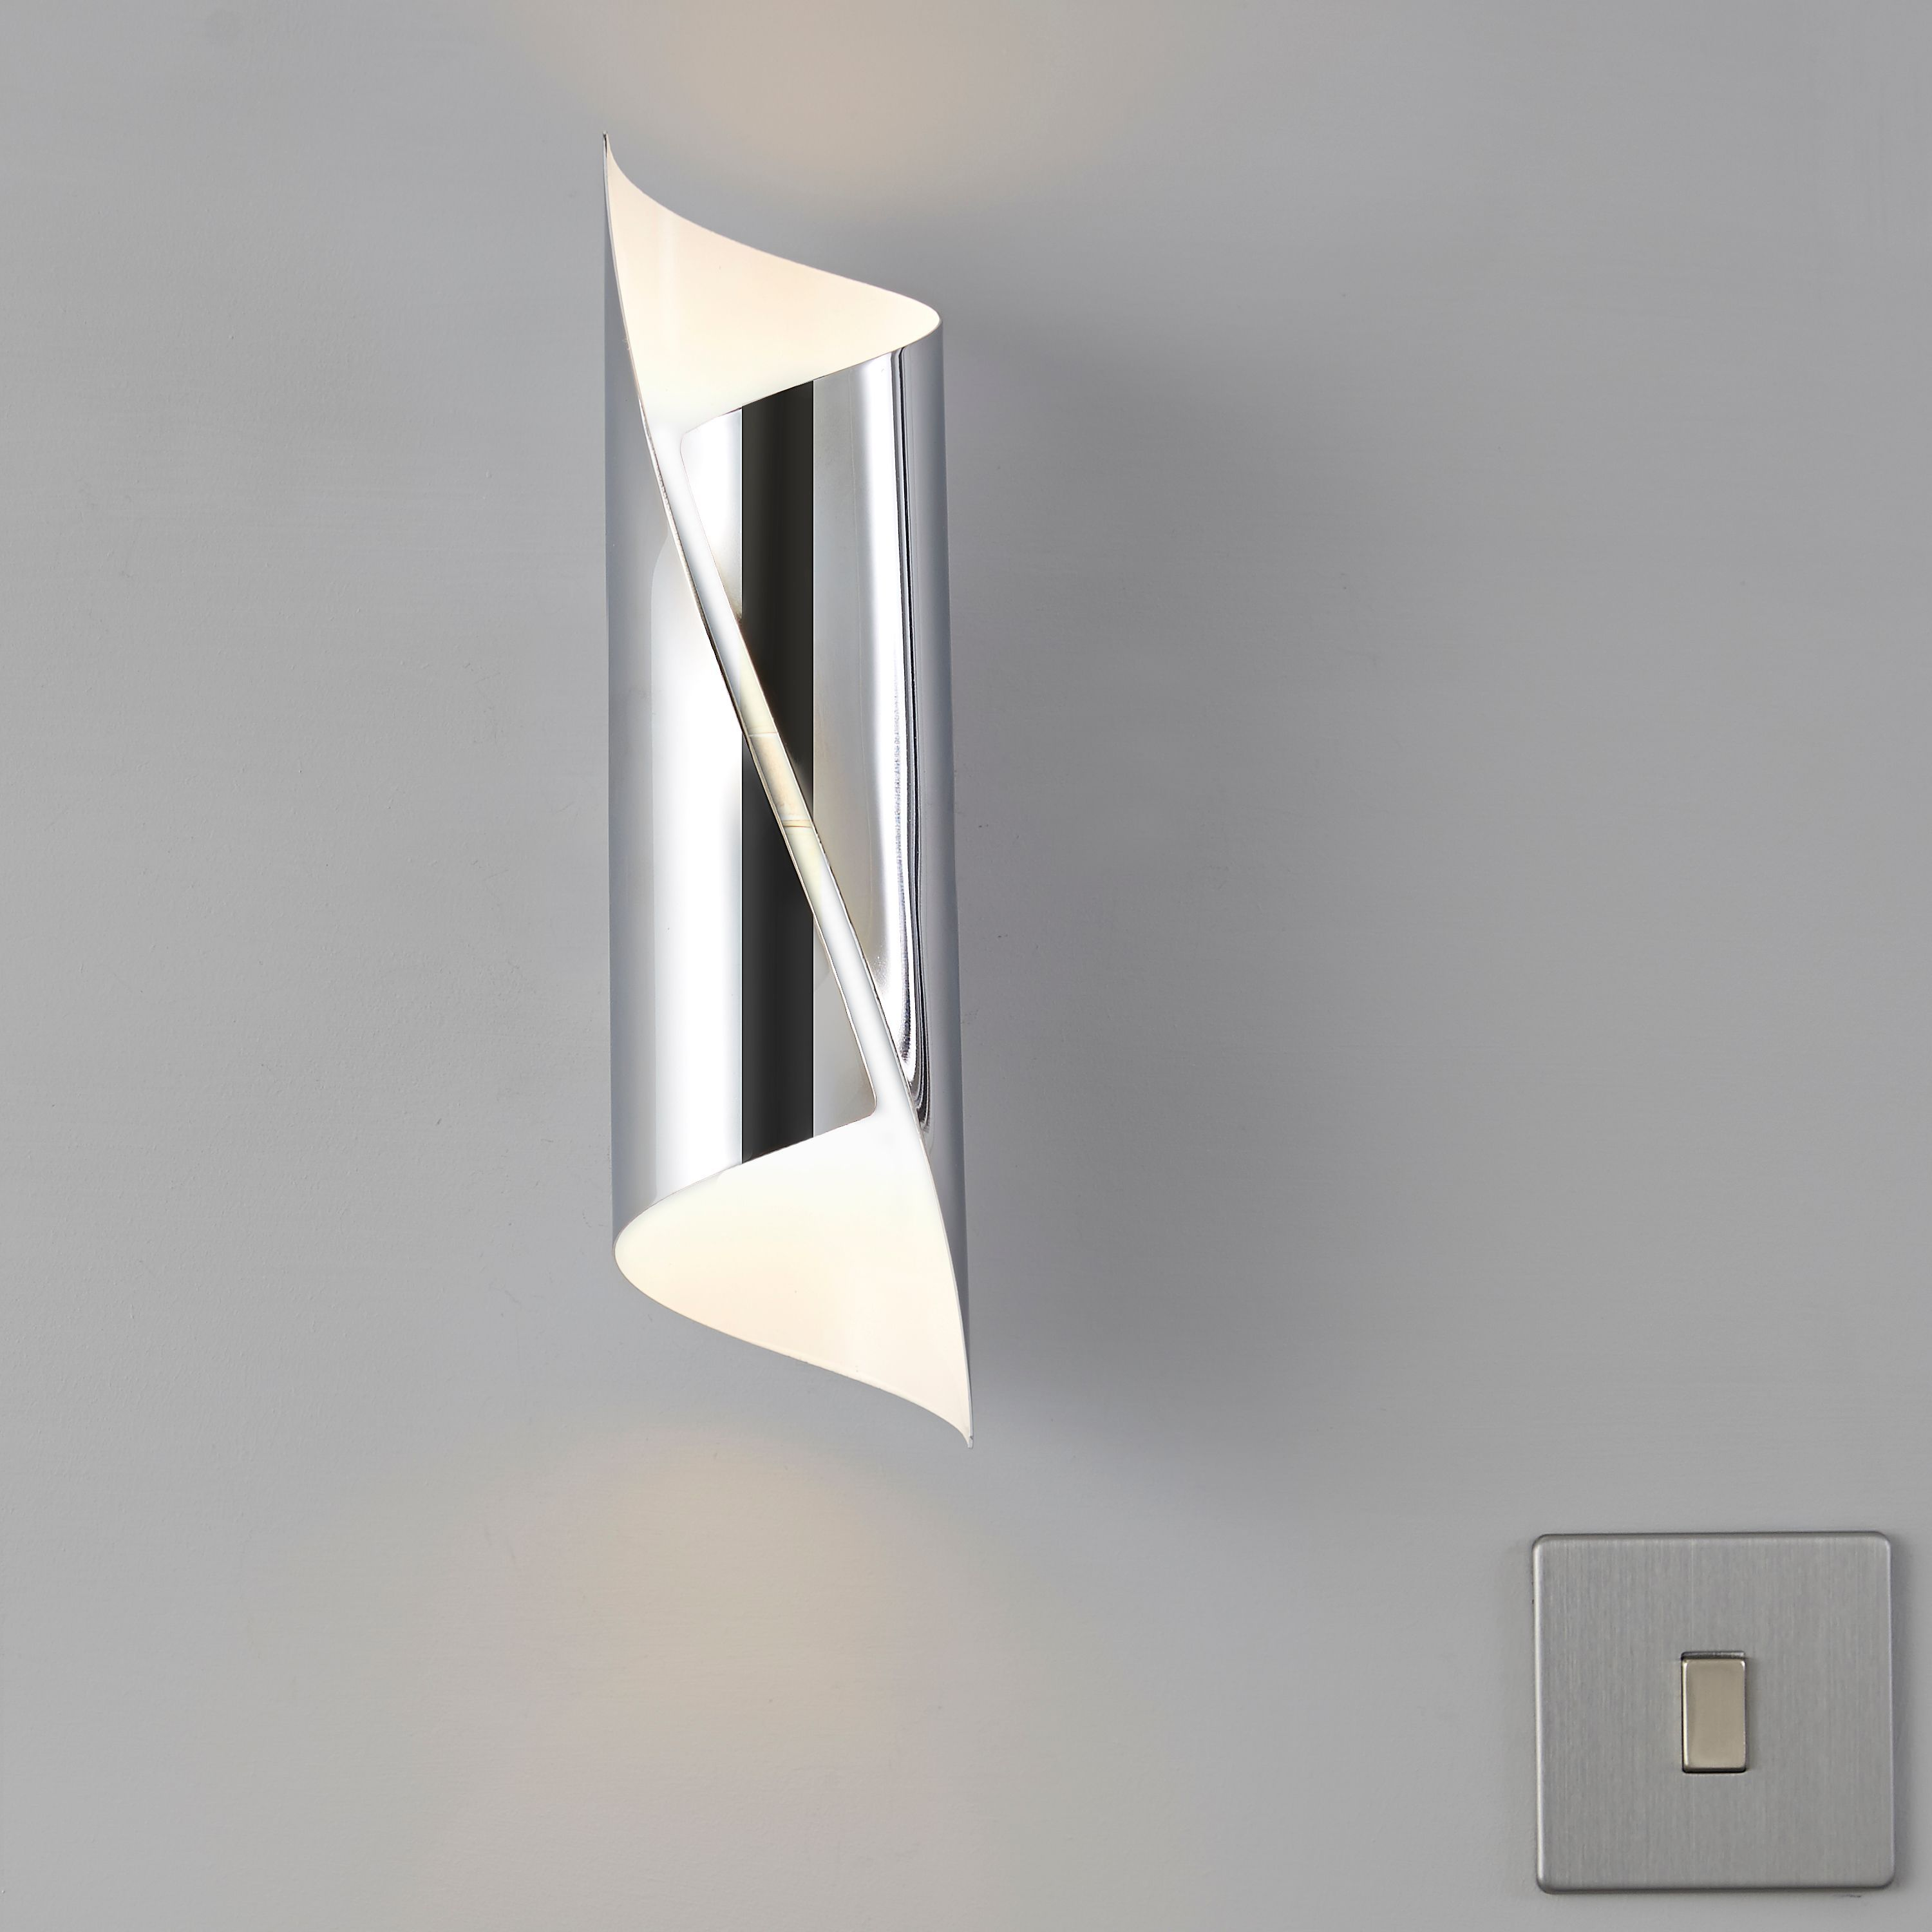 Zodia cut tube chrome effect single wall light departments diy zodia cut tube chrome effect single wall light departments diy at bq aloadofball Image collections